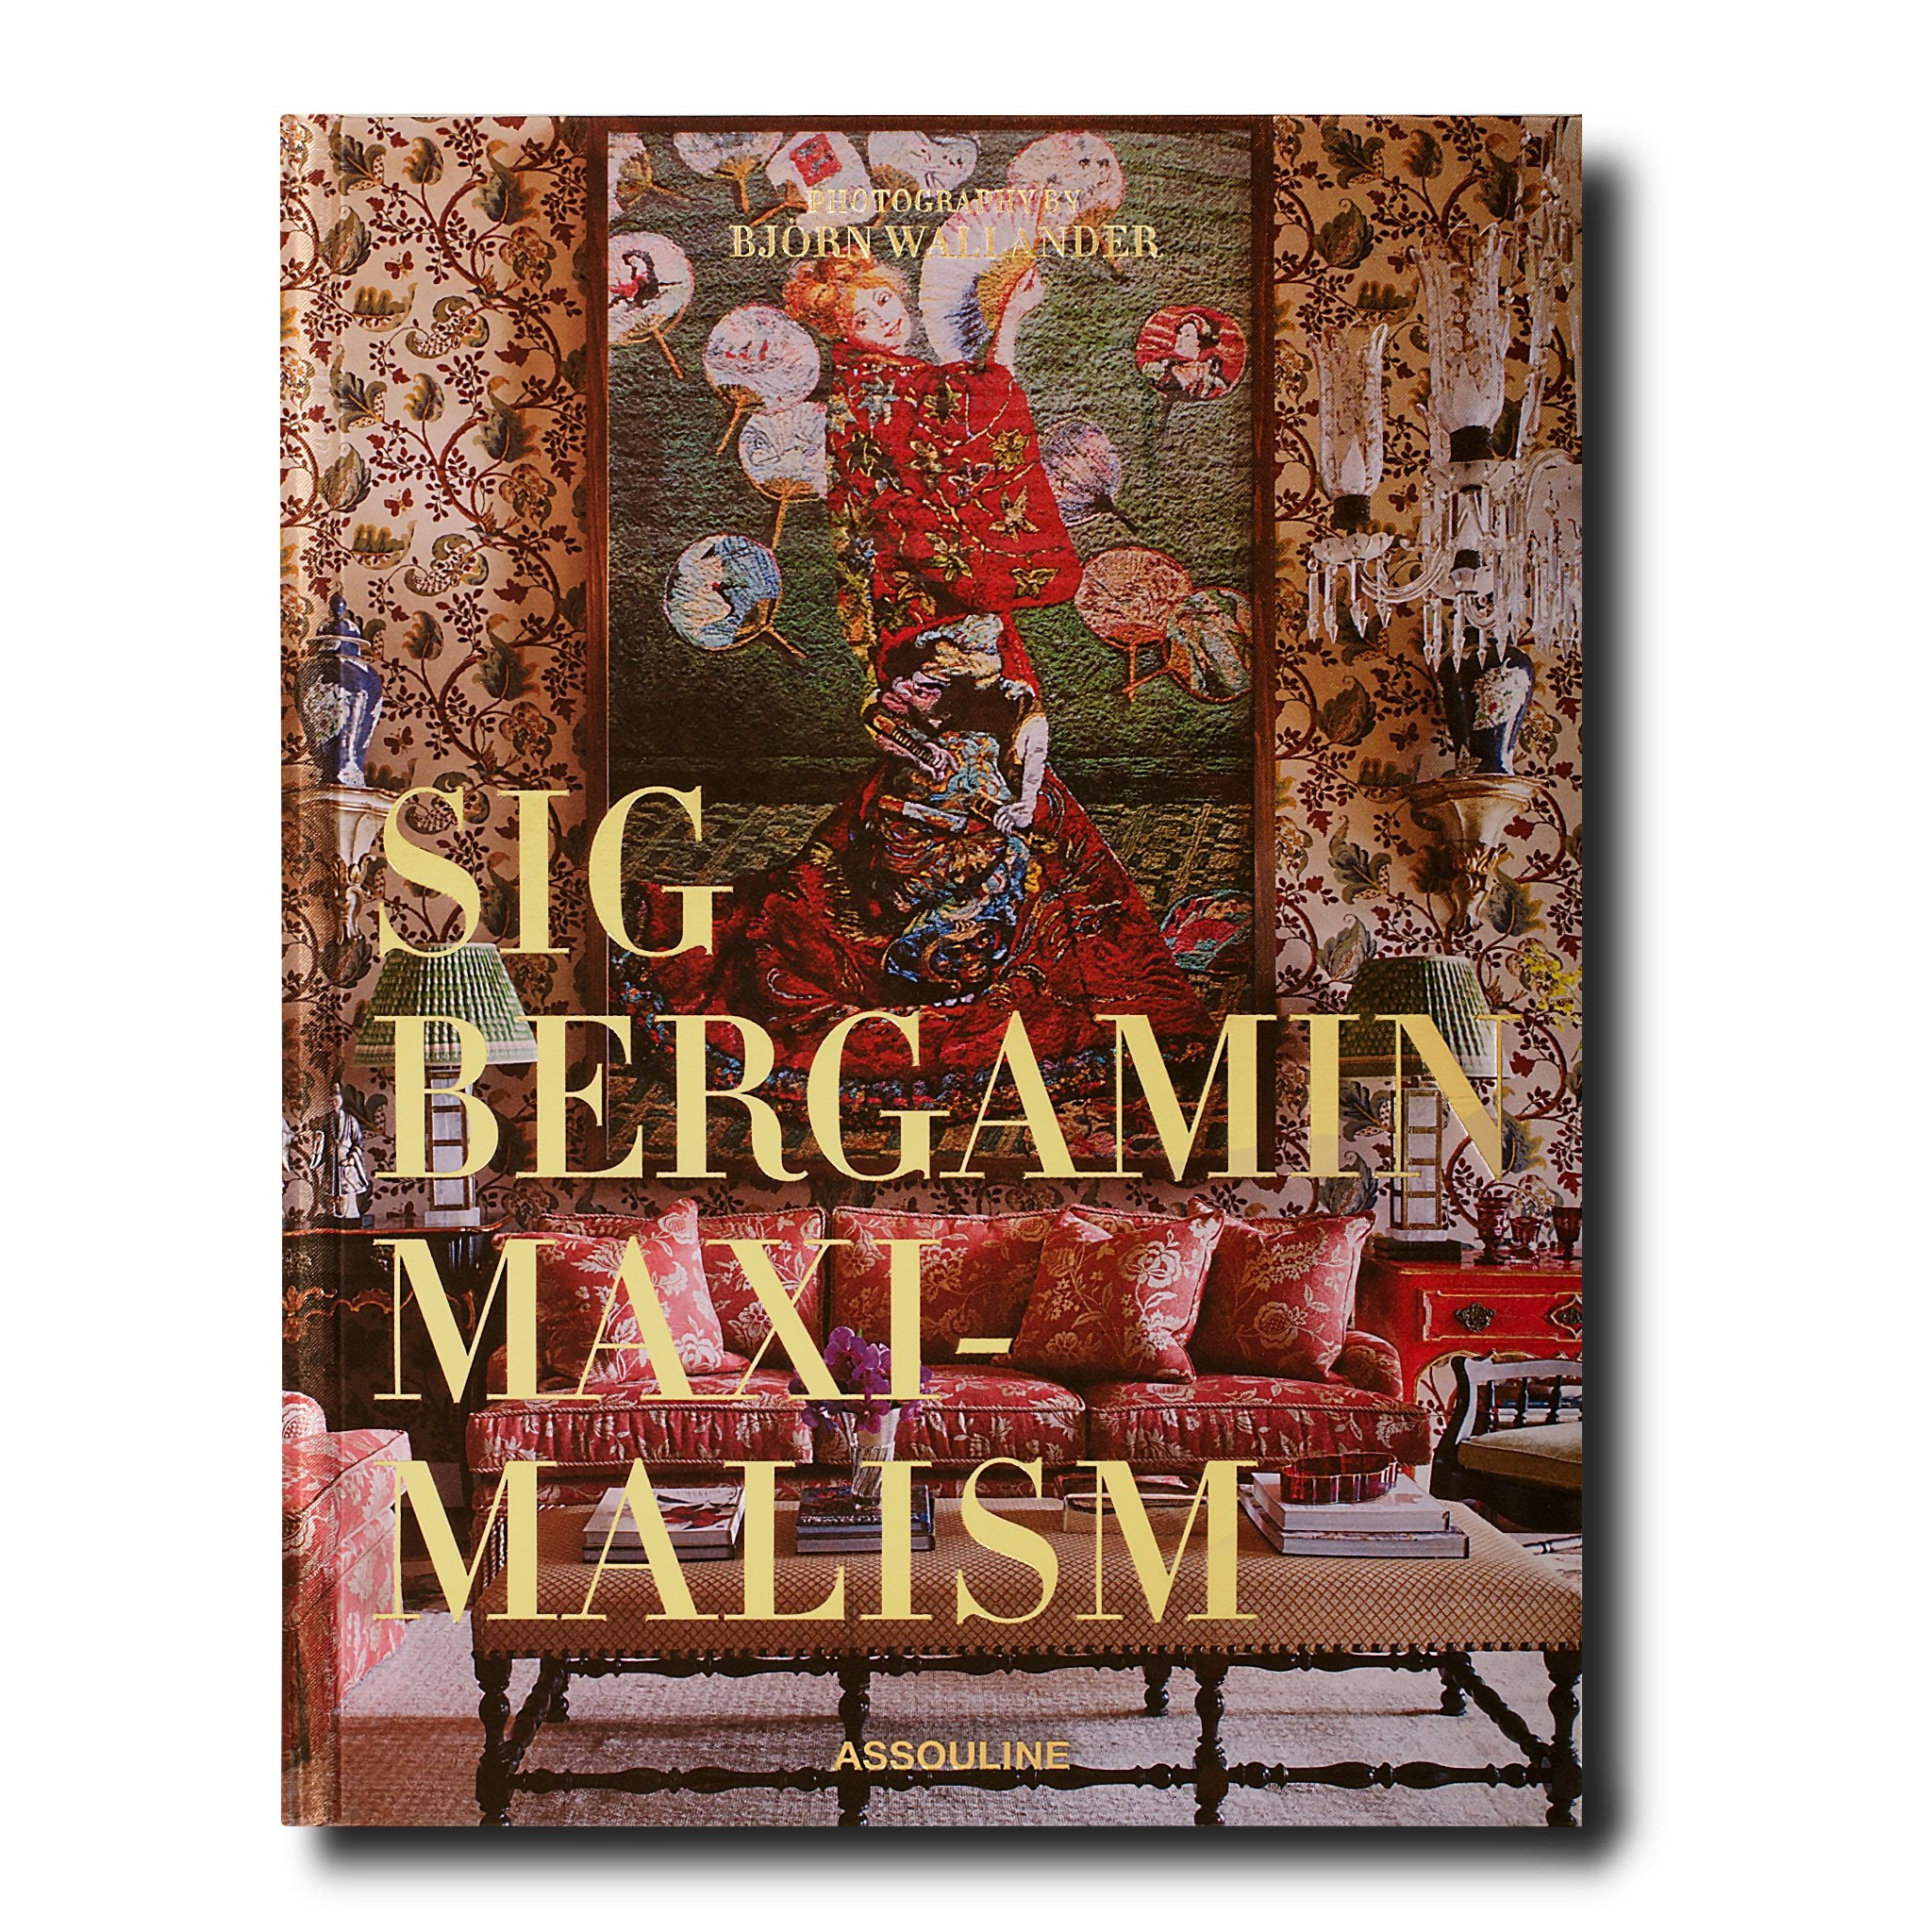 Maximalism by Sig Bergamin - Assouline 2680b8a65130d